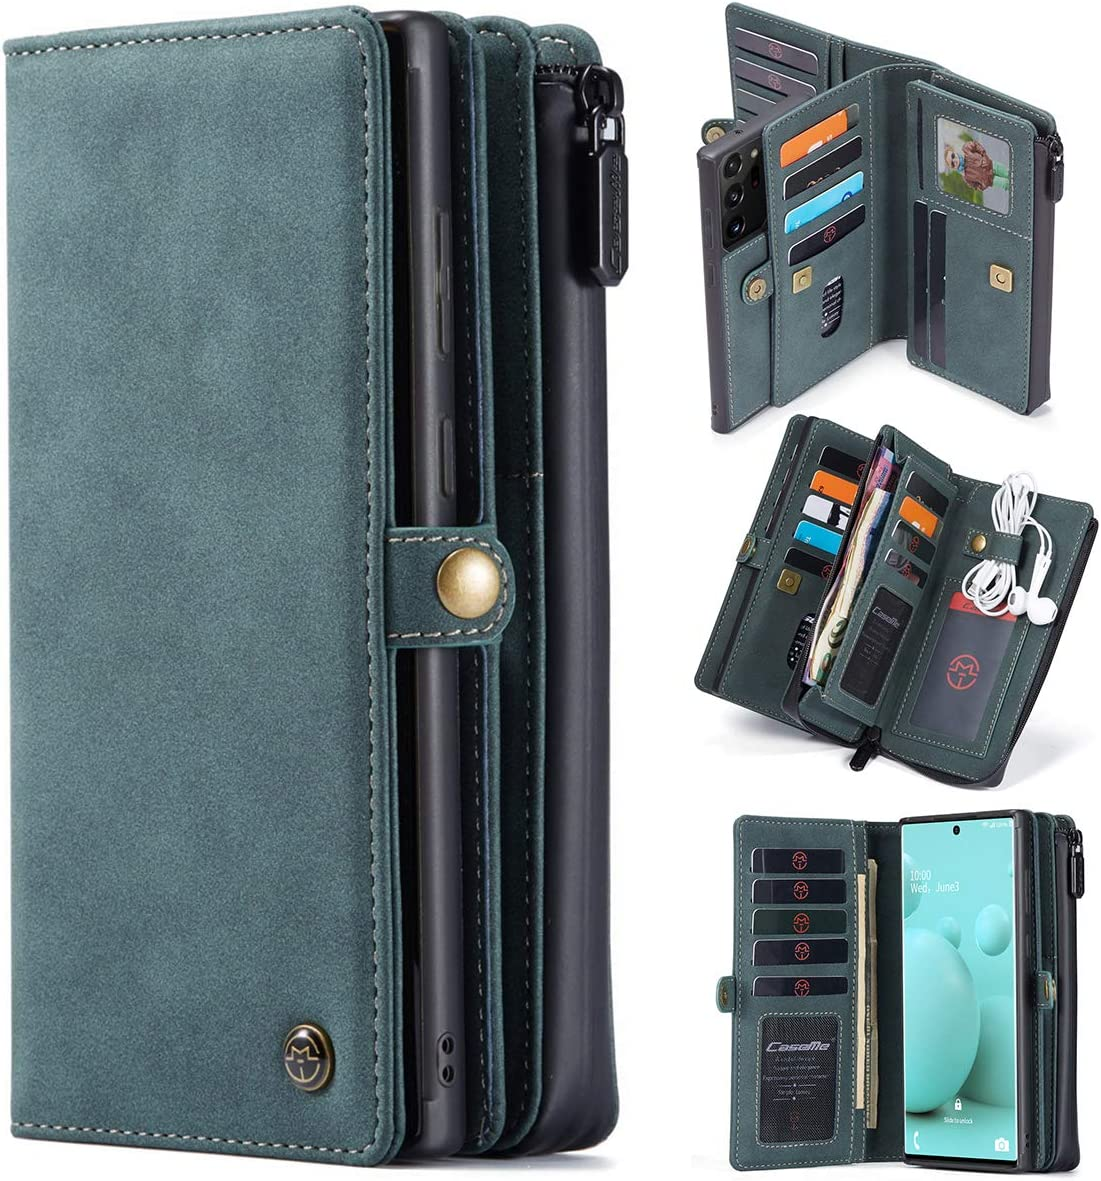 Genuine Leather Wallet Case Cell Phone Sleeve Holster, 17 Cards Holder RFID Protection+Detachable Magnetic Cover+Zipper Phone Pouch for Samsung Galaxy Note 20 Ultra 6.9-inch 2020 (Blue, Note20)